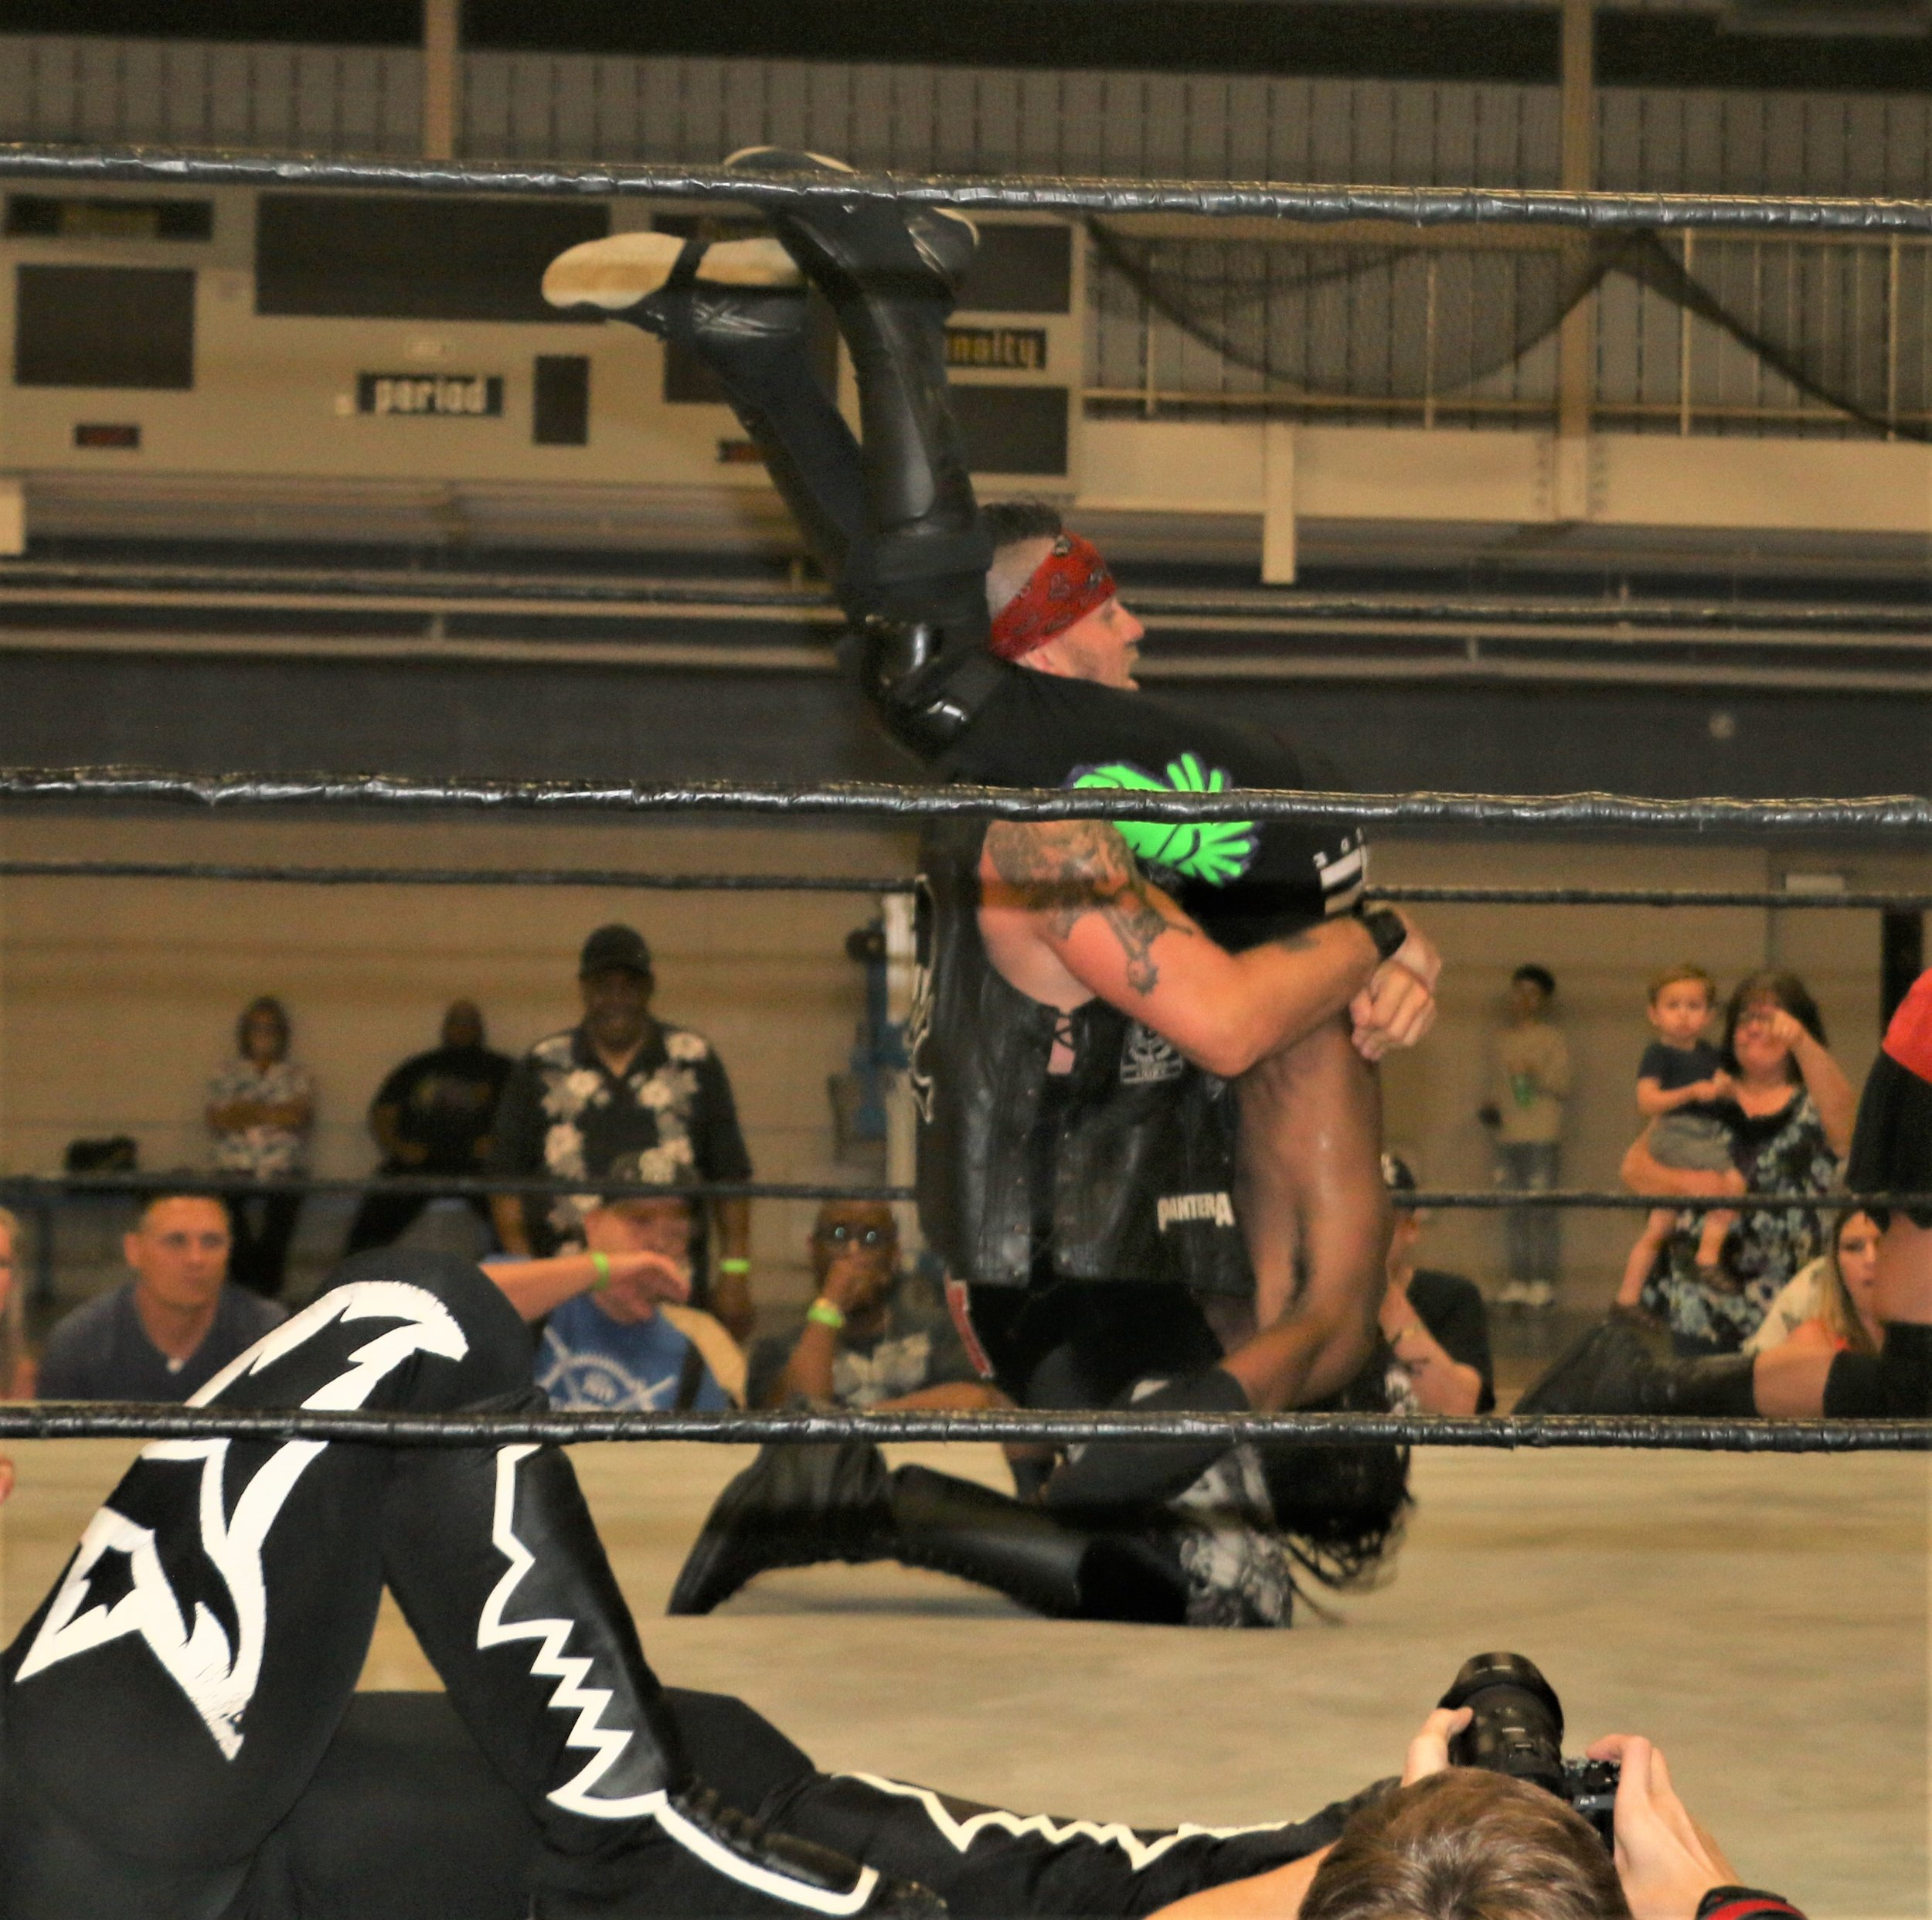 Ruff Crossing tombstone piledrives TW3 leading to his elimination.